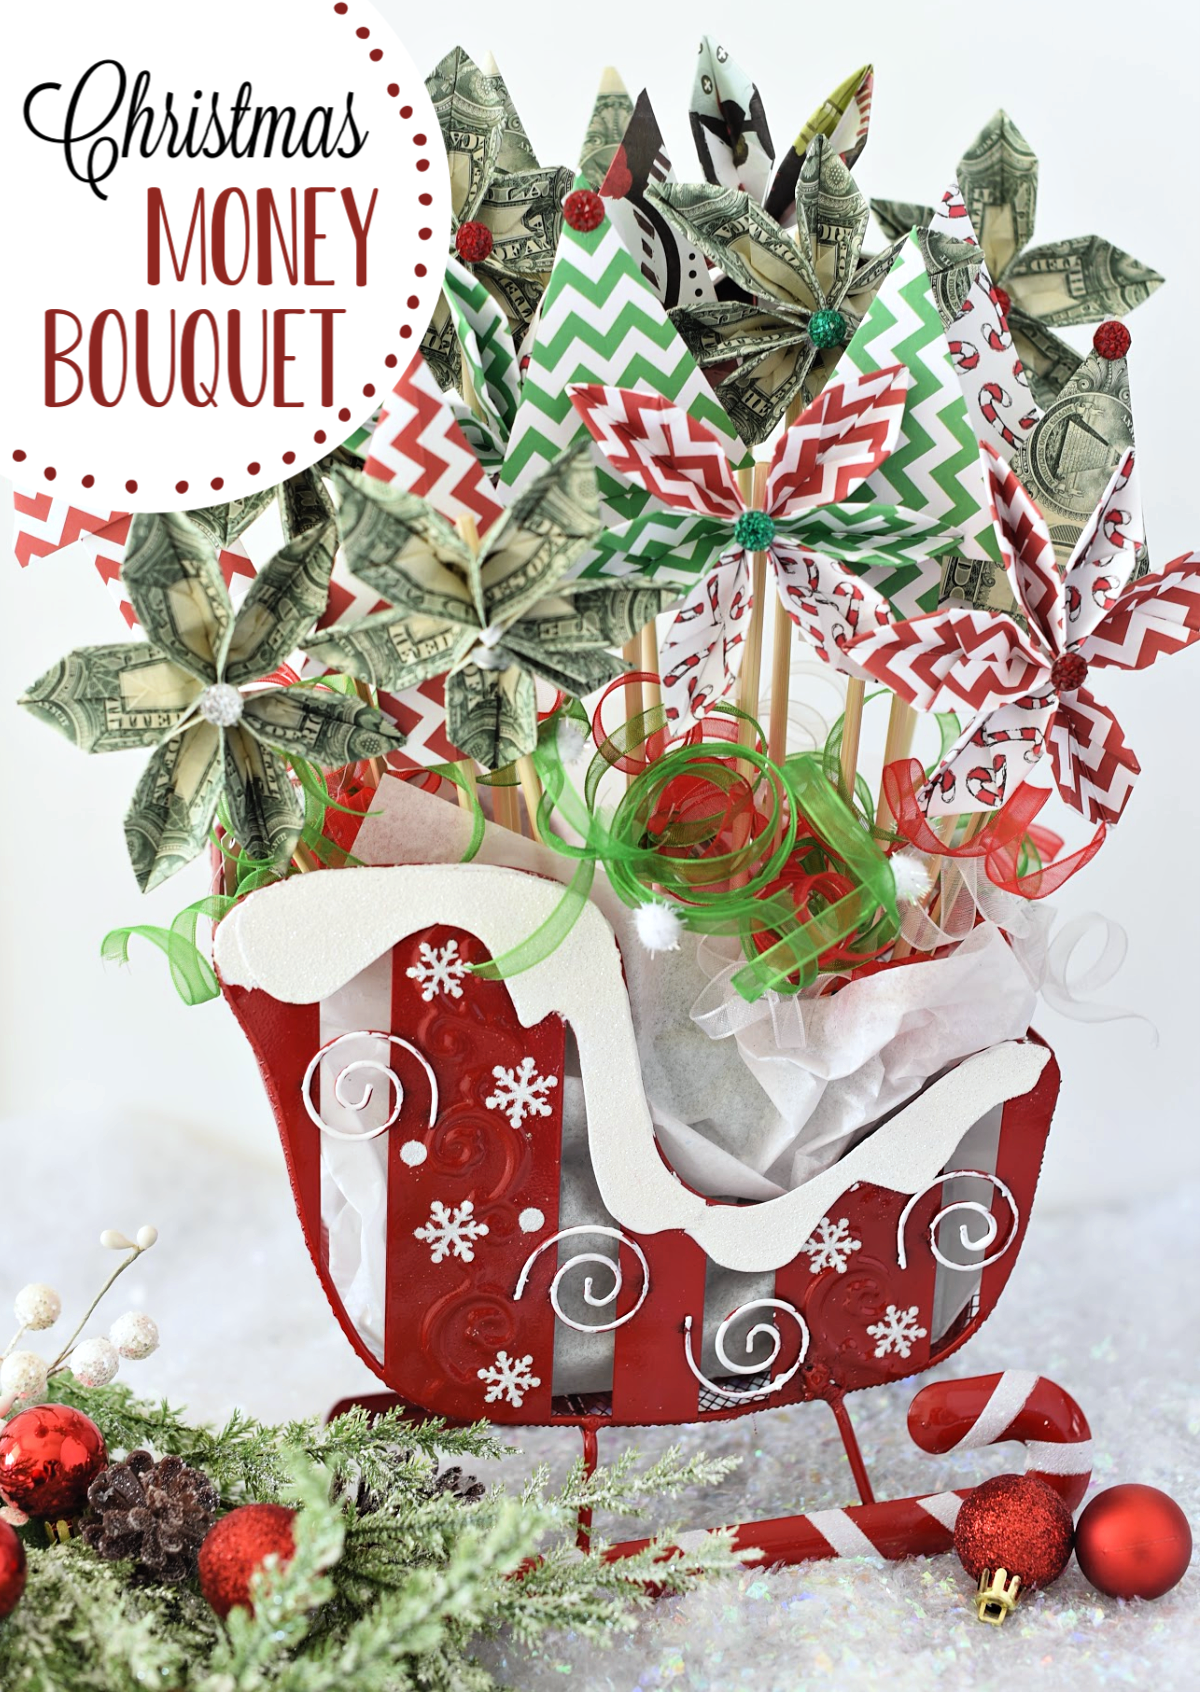 Christmas Money Bouquet makes the perfect Christmas gift! Such a fun and simple project, it makes giving money fun. #gifts #fungiftideas #funwaytogivemoney